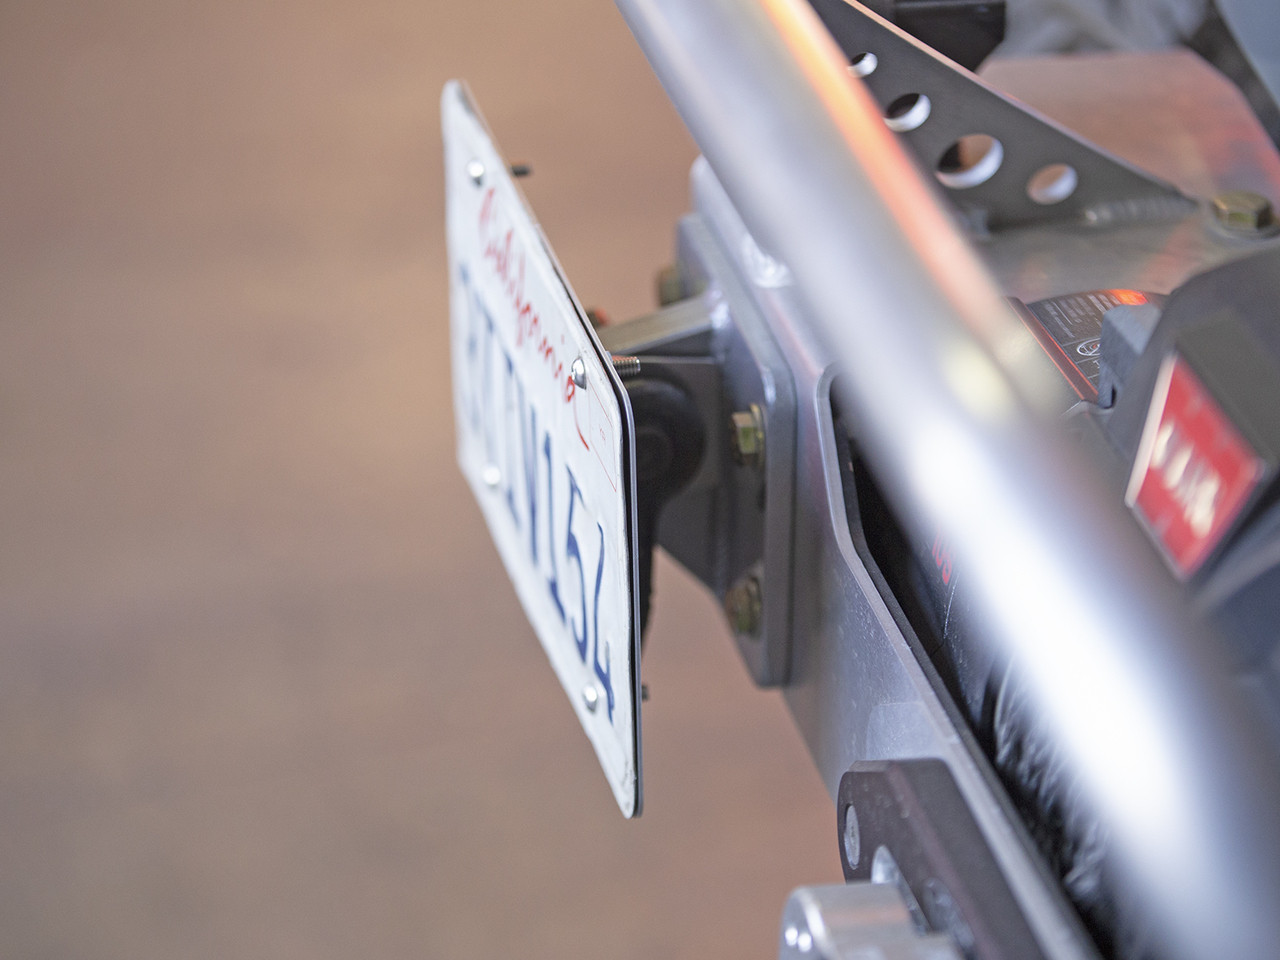 Uses the existing D-Ring/Tow Point Mount on the front bumper